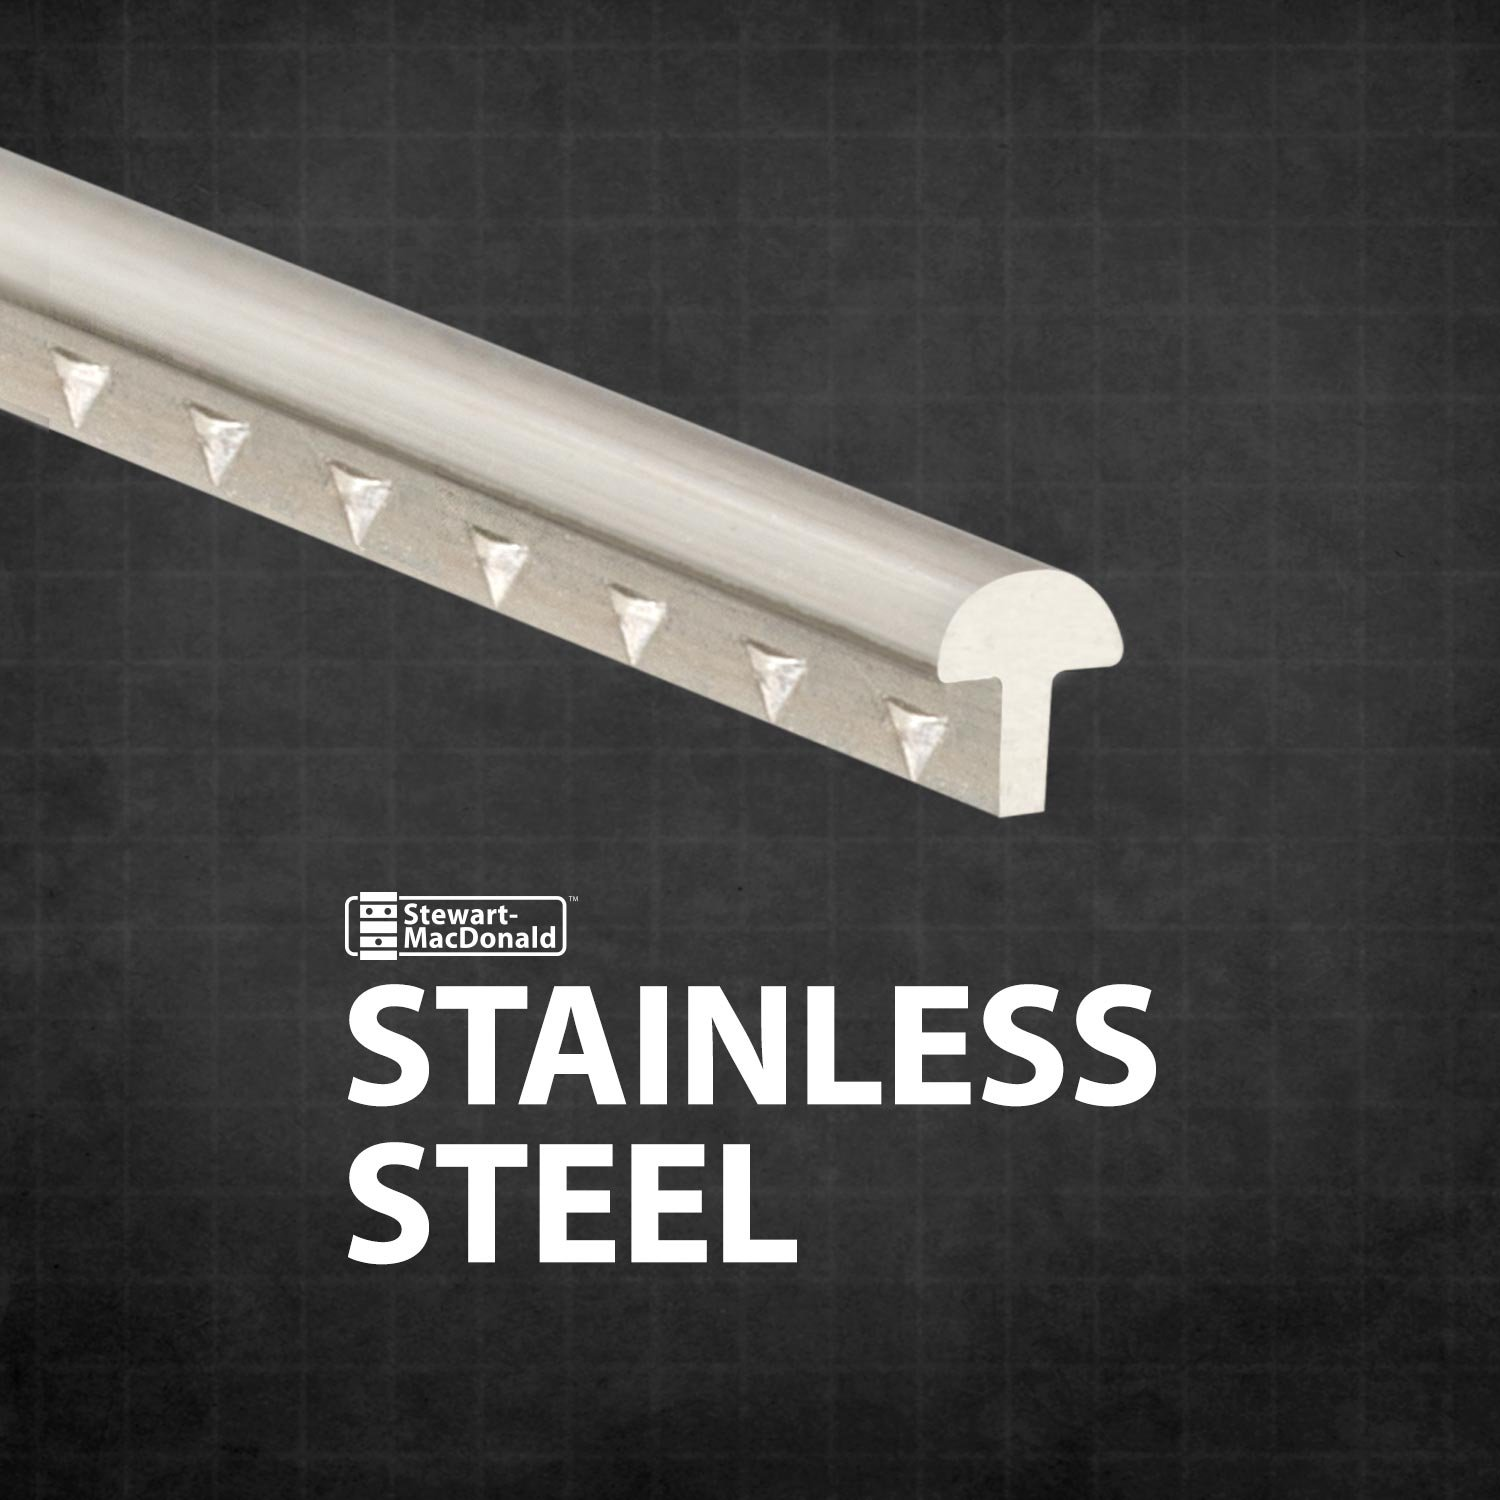 StewMac Stainless Steel Fretwire, Medium/Higher, 2-foot Pieces - 3 Pack (6 Feet Total) by StewMac (Image #2)